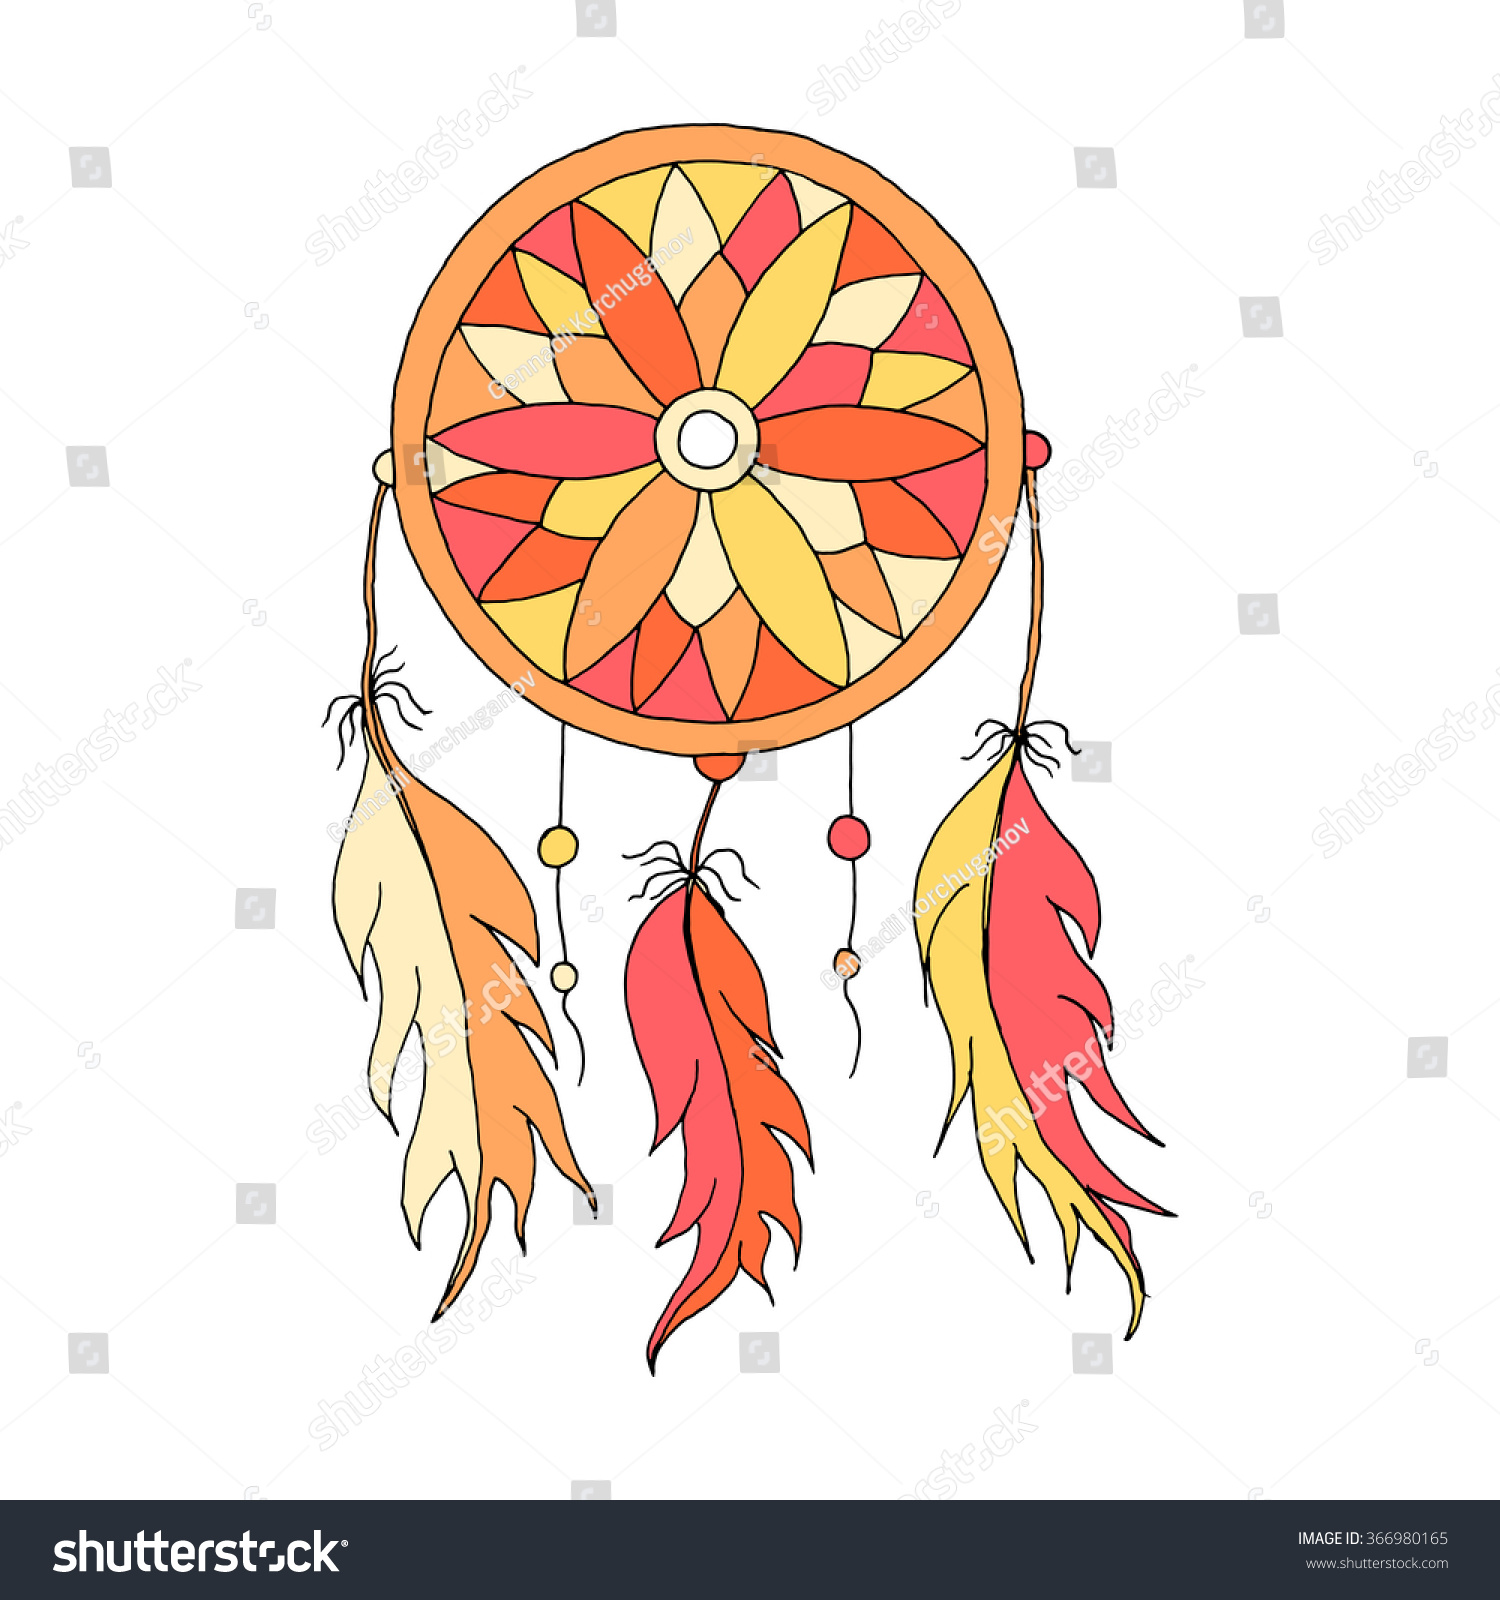 Color art dreamcatcher - Dreamcatcher Color Hand To Draw With Beads And Feathers Of Birds